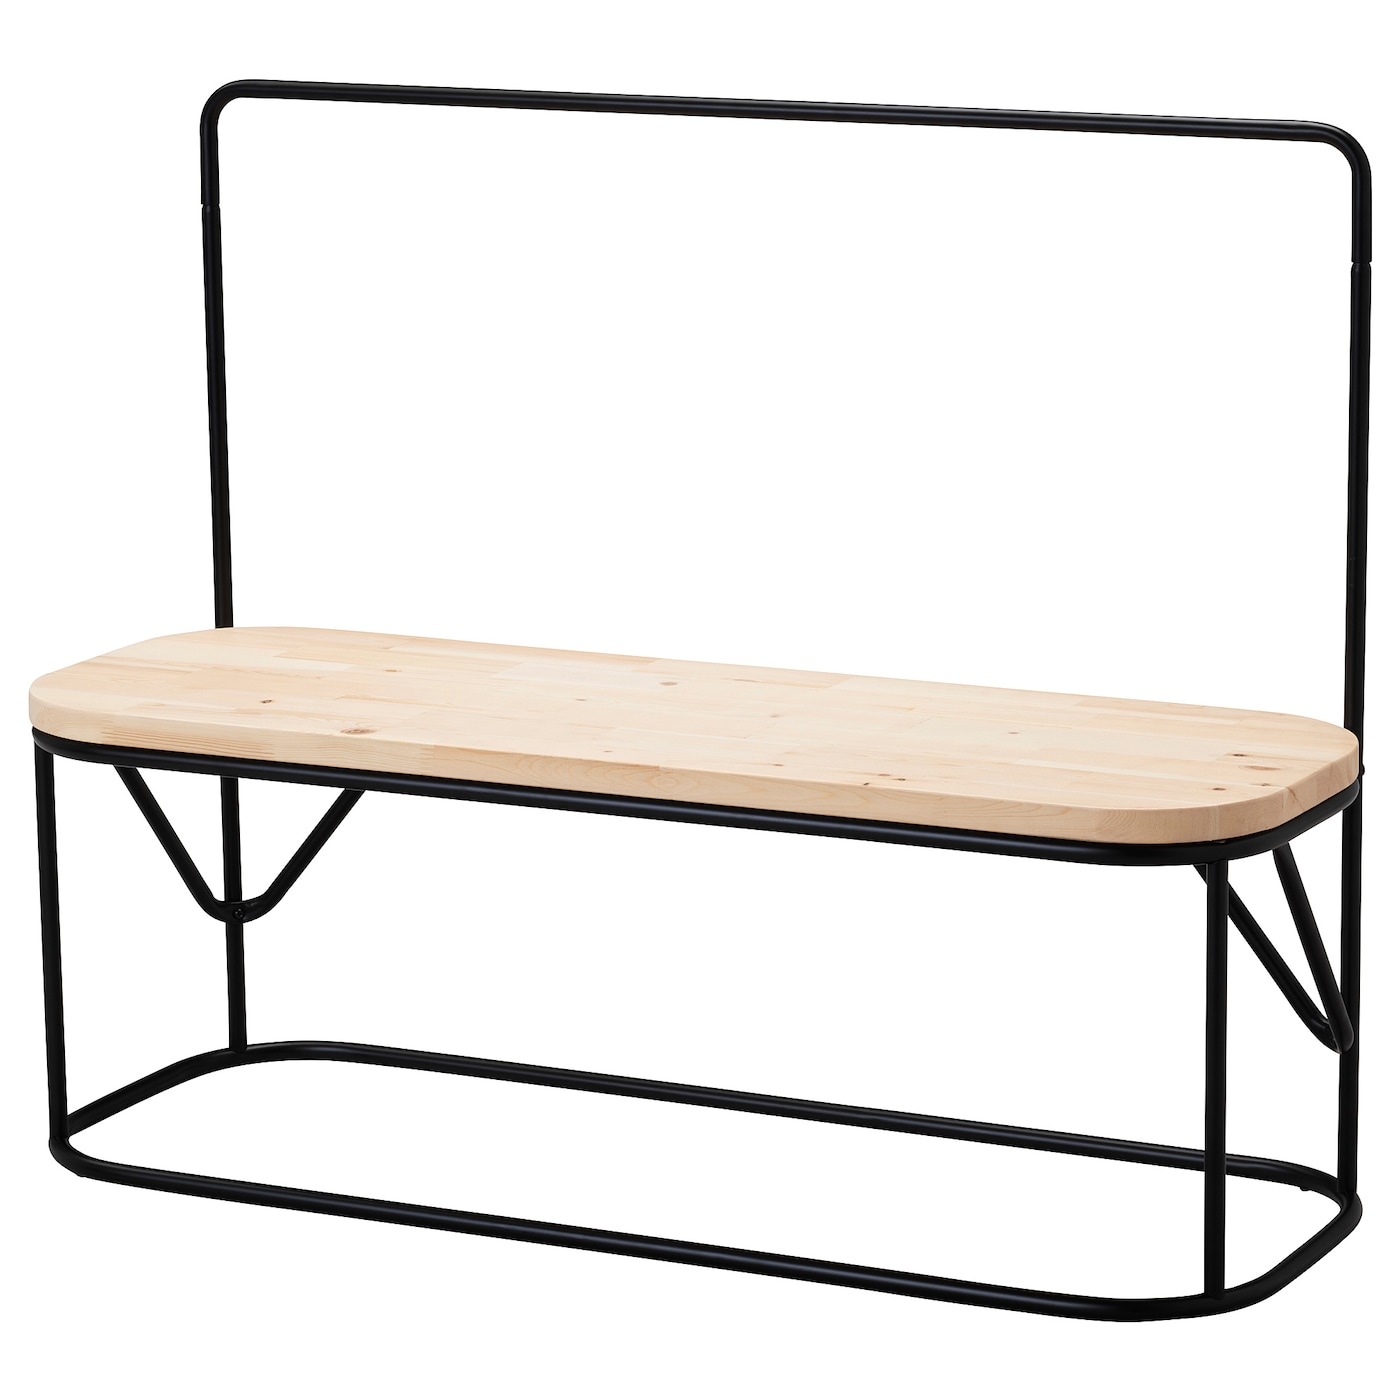 IKEA HJÄRTELIG bench with clothes rack